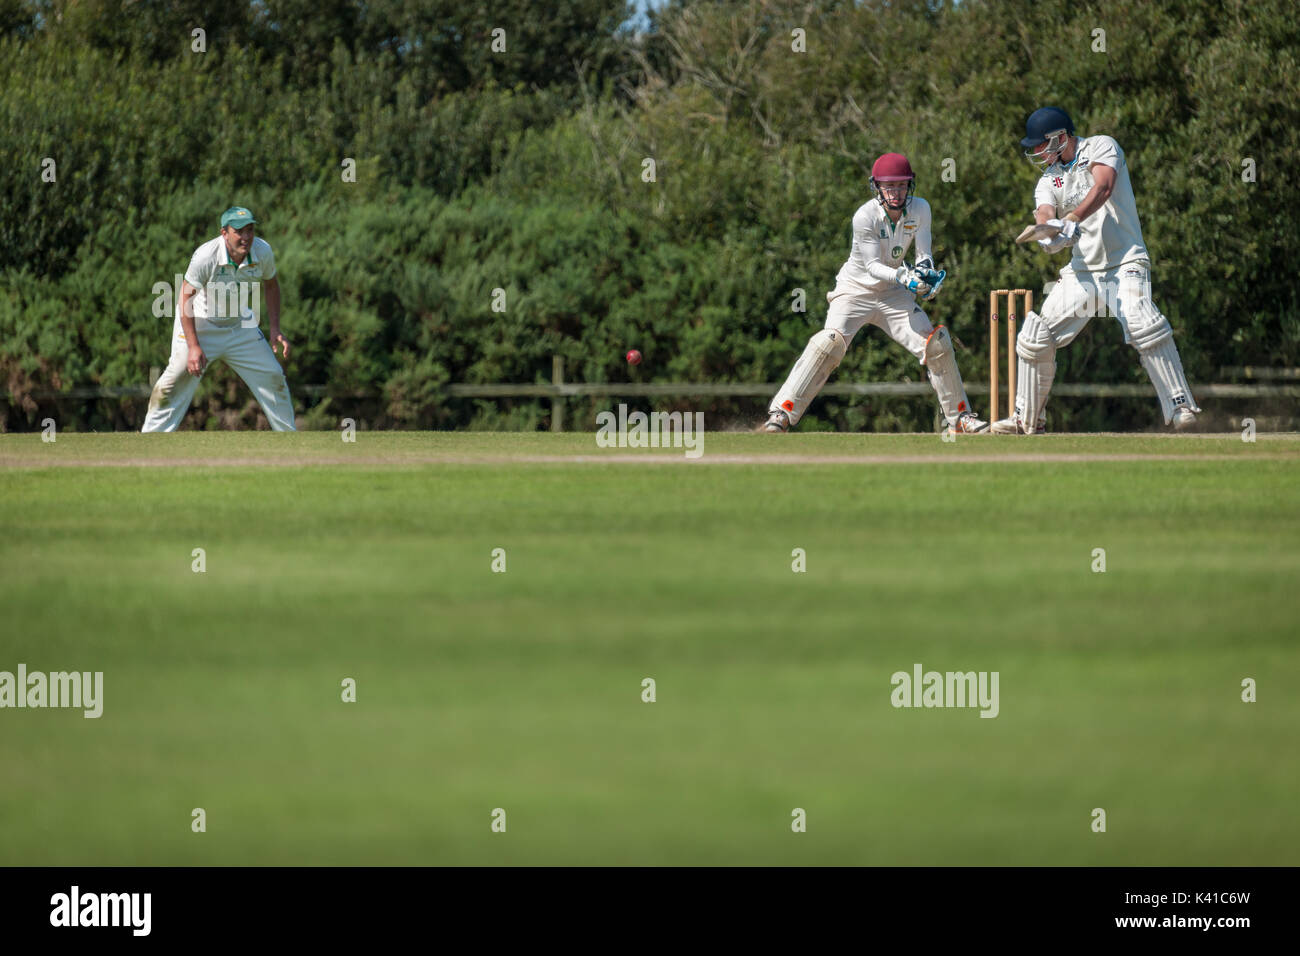 A batsman plays a shot during a Sunday League match between two local Cricket teams. Stock Photo